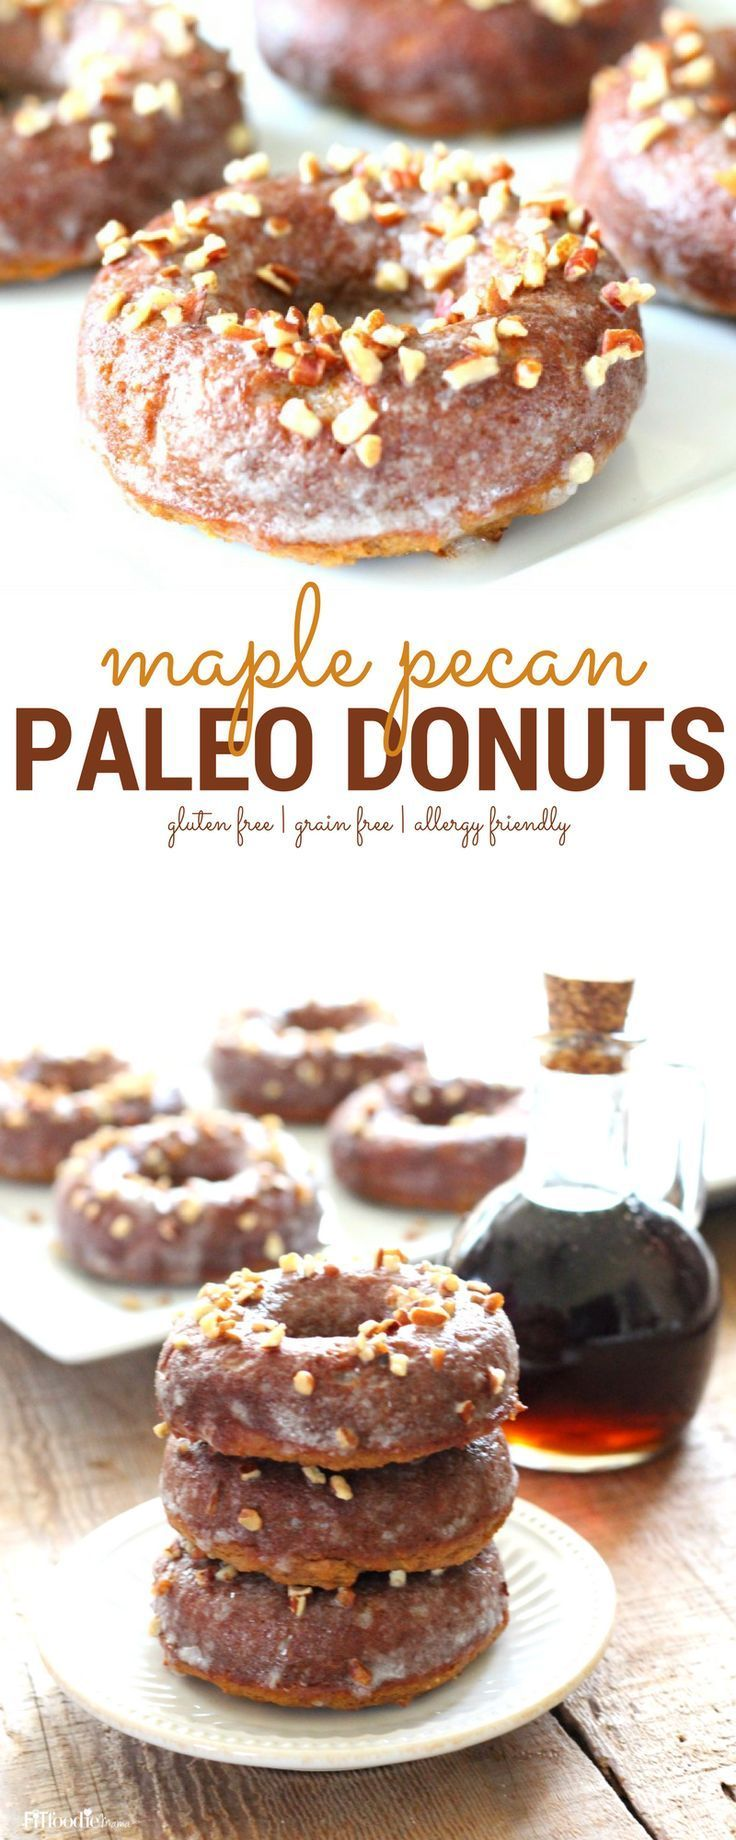 Quick and Easy Maple Pecan Paleo Donuts - The Fit Foodie Mama #proteindonuts